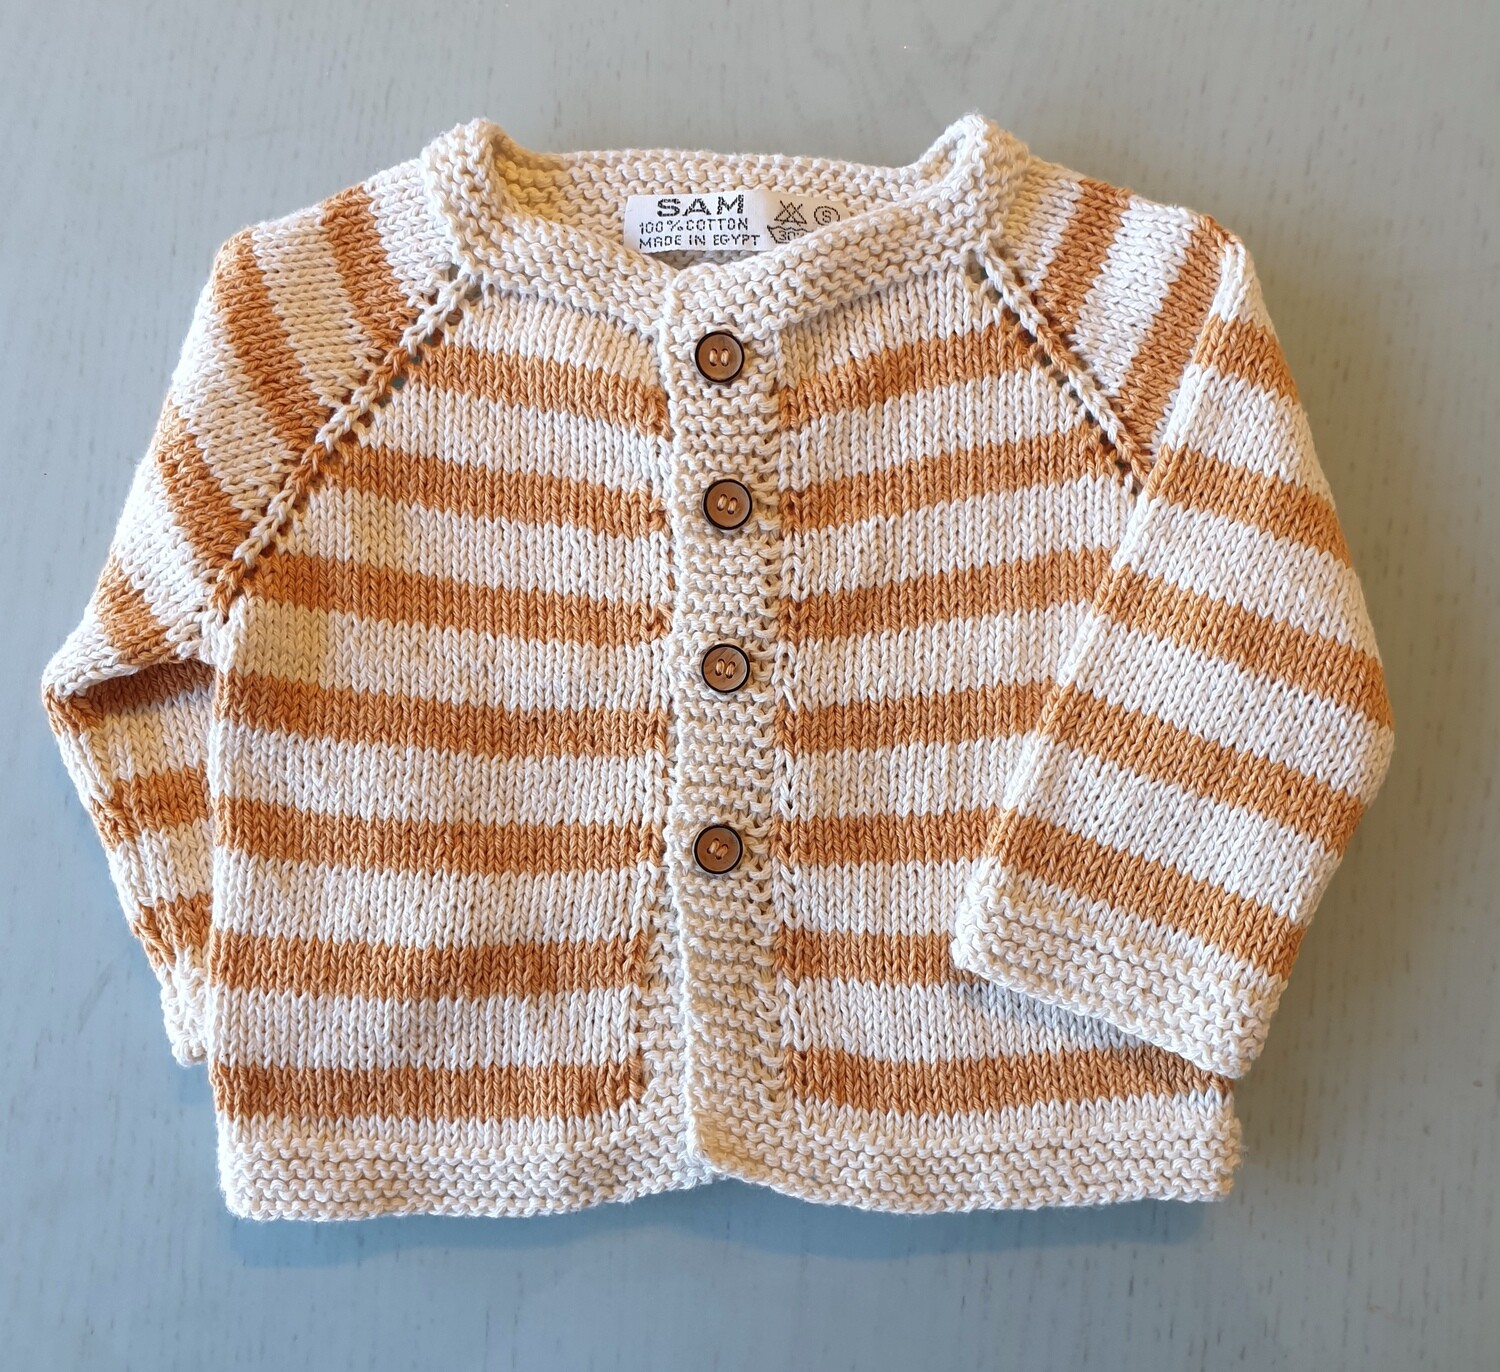 Off White & Beige Striped Jacket (Small)